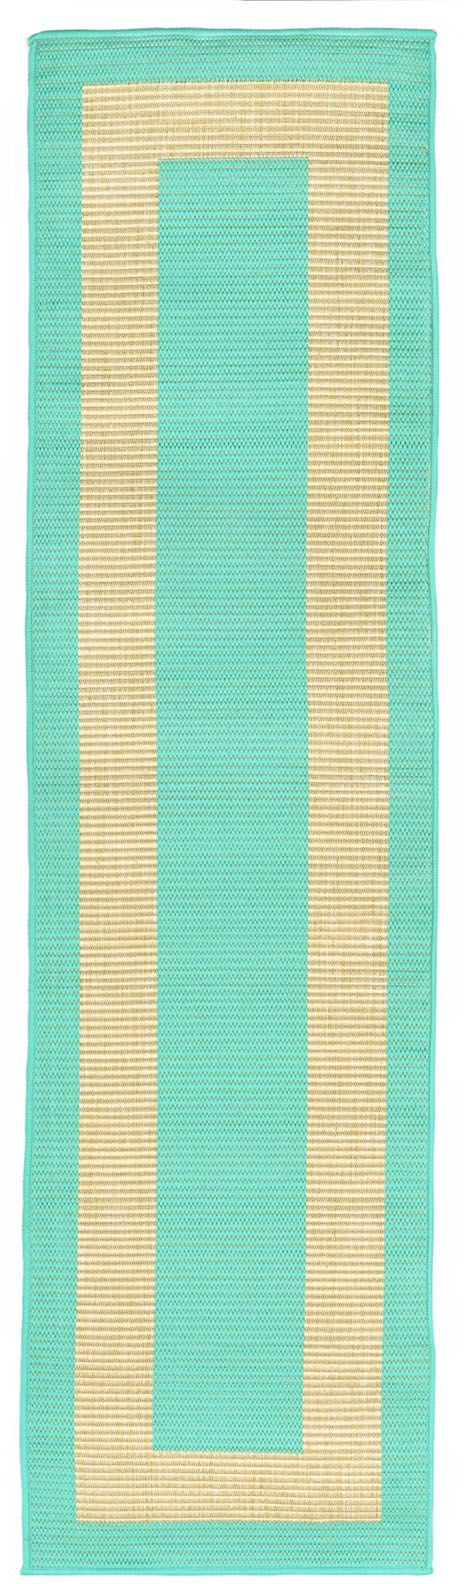 trans ocean tulum solid/striped area rug collection